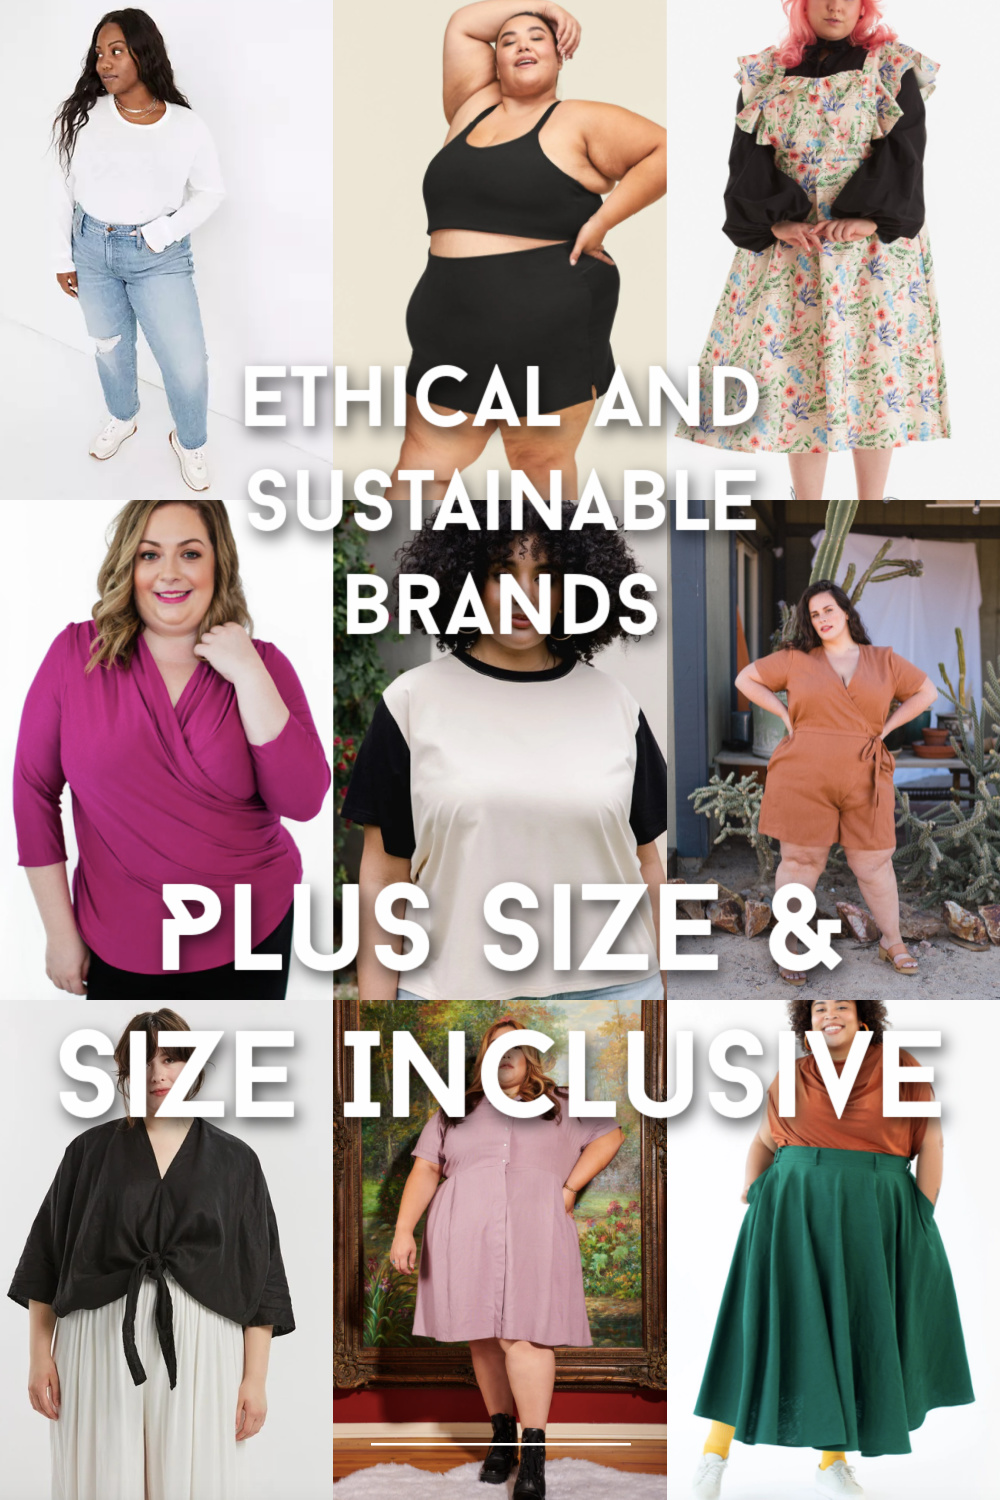 Plus Size Sustainable Brands